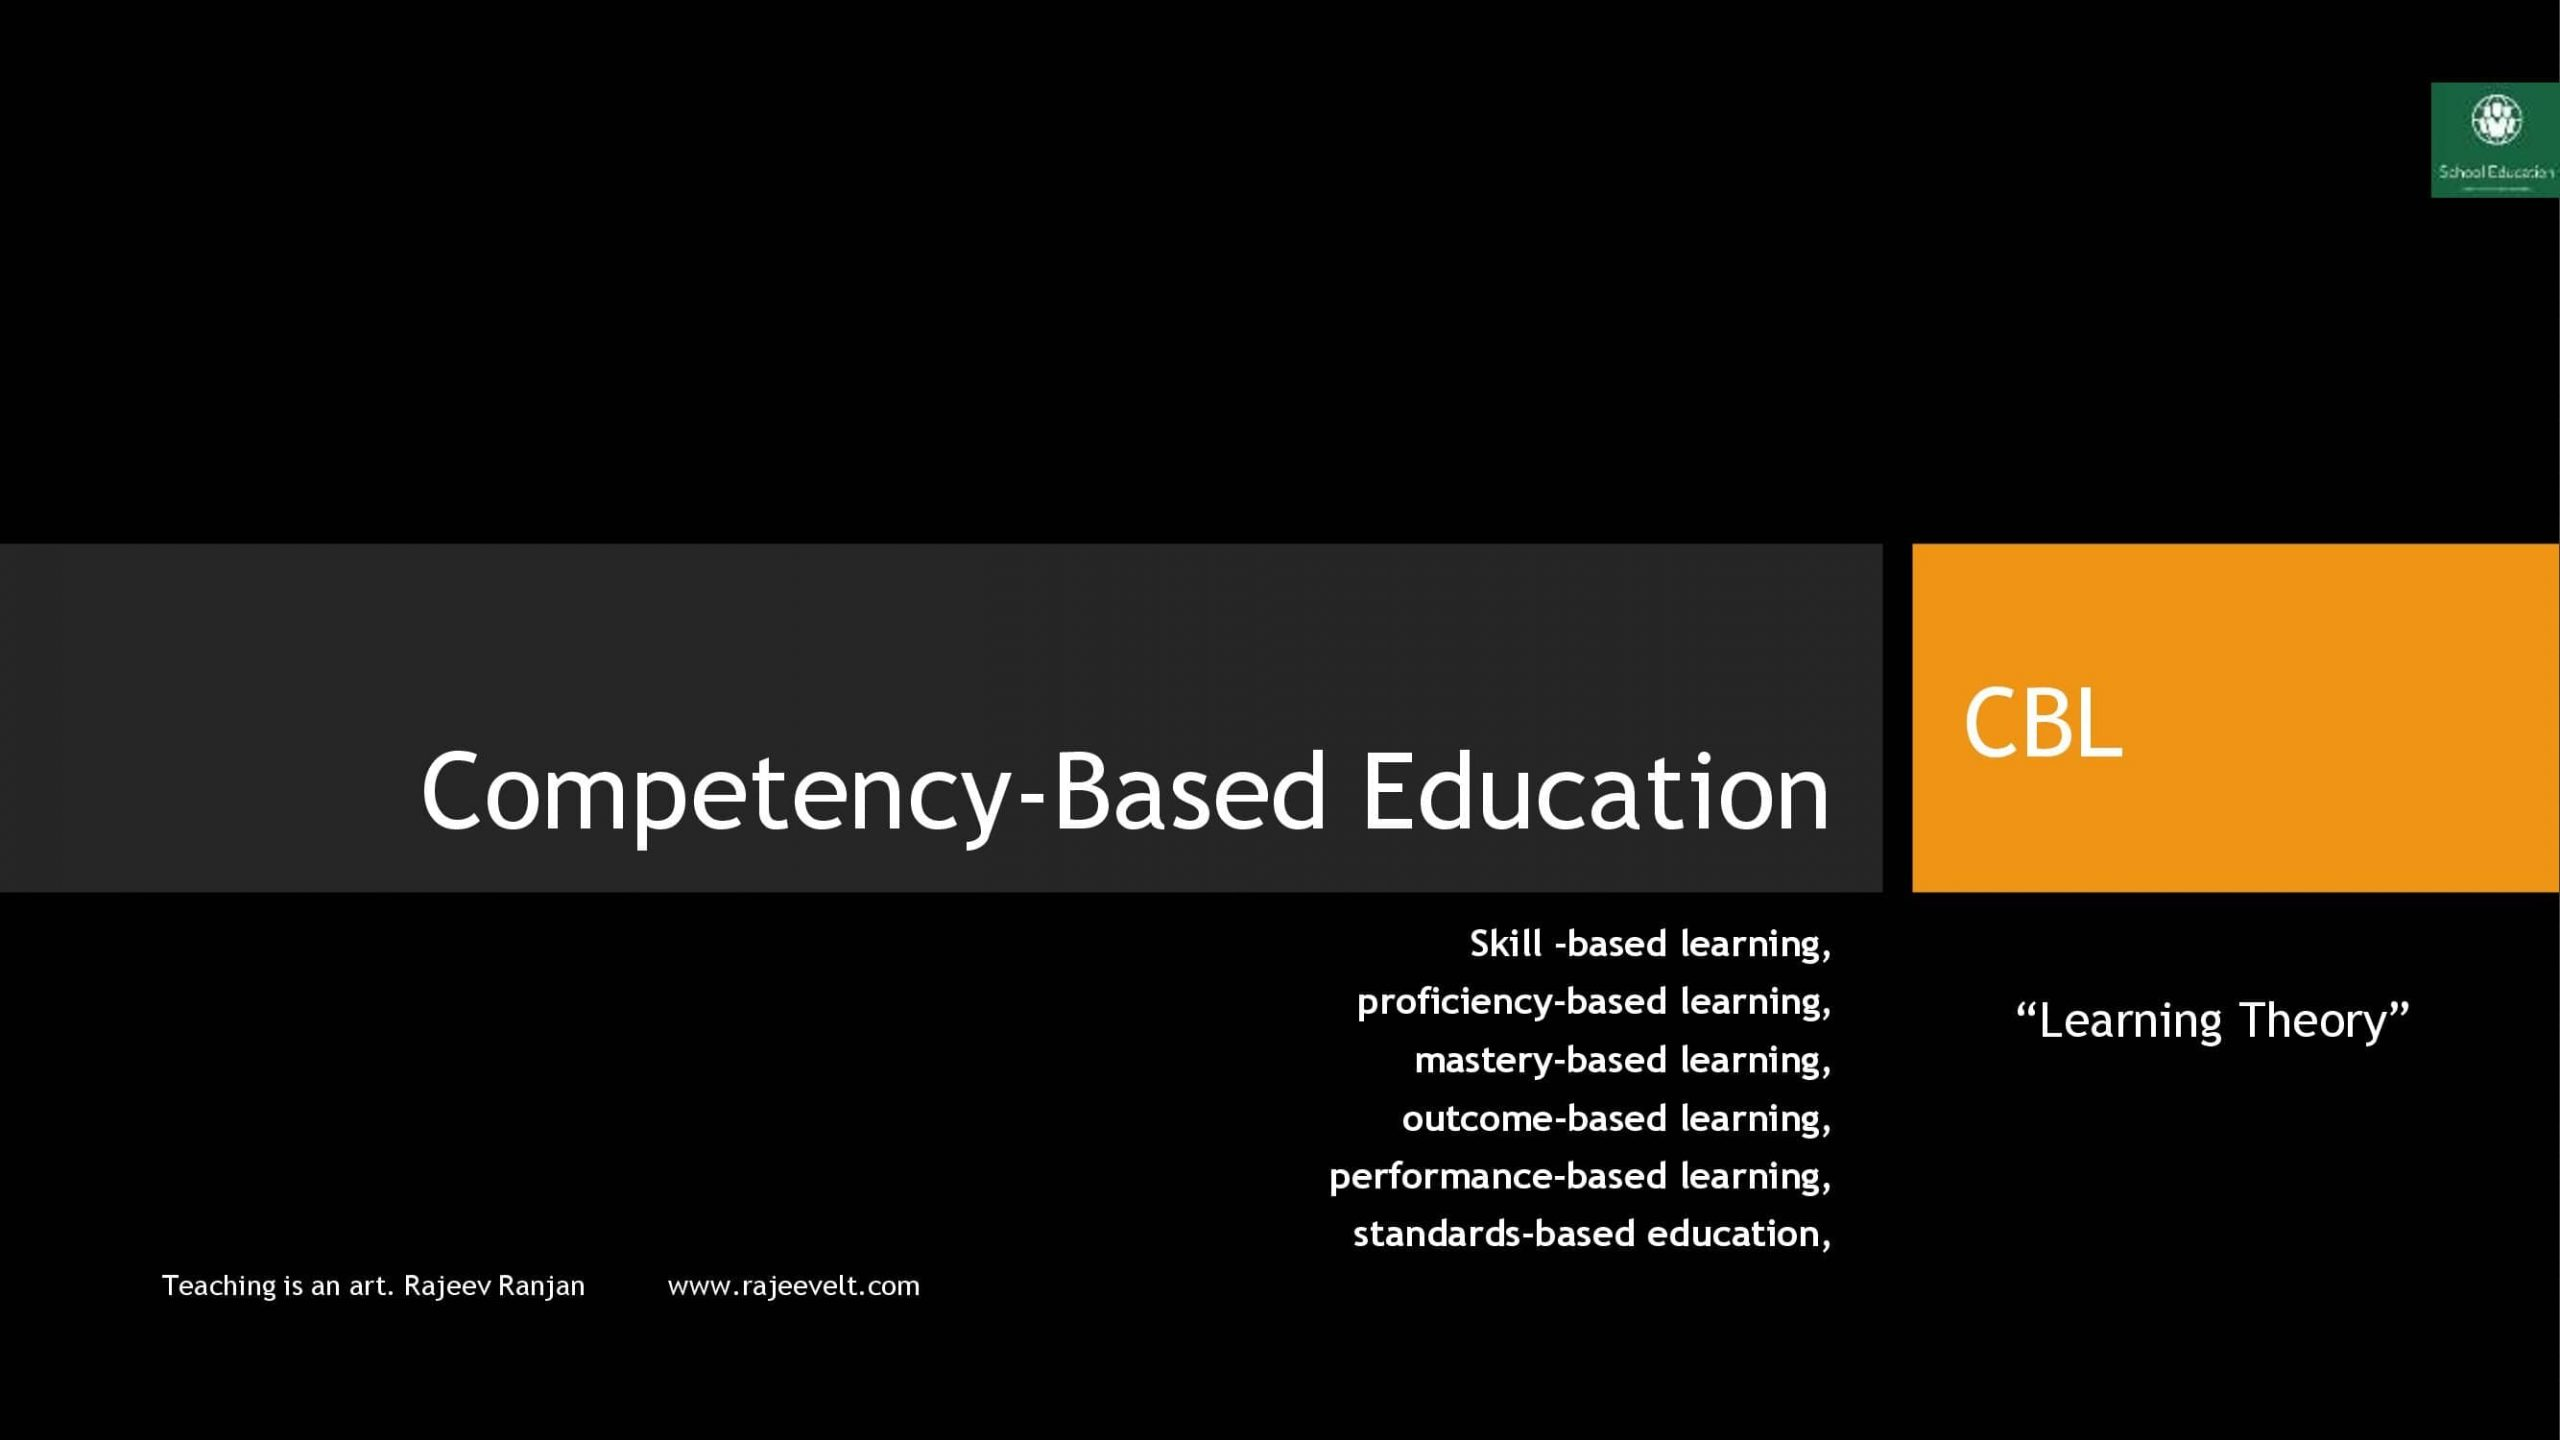 competency based education-rajeevelt.com